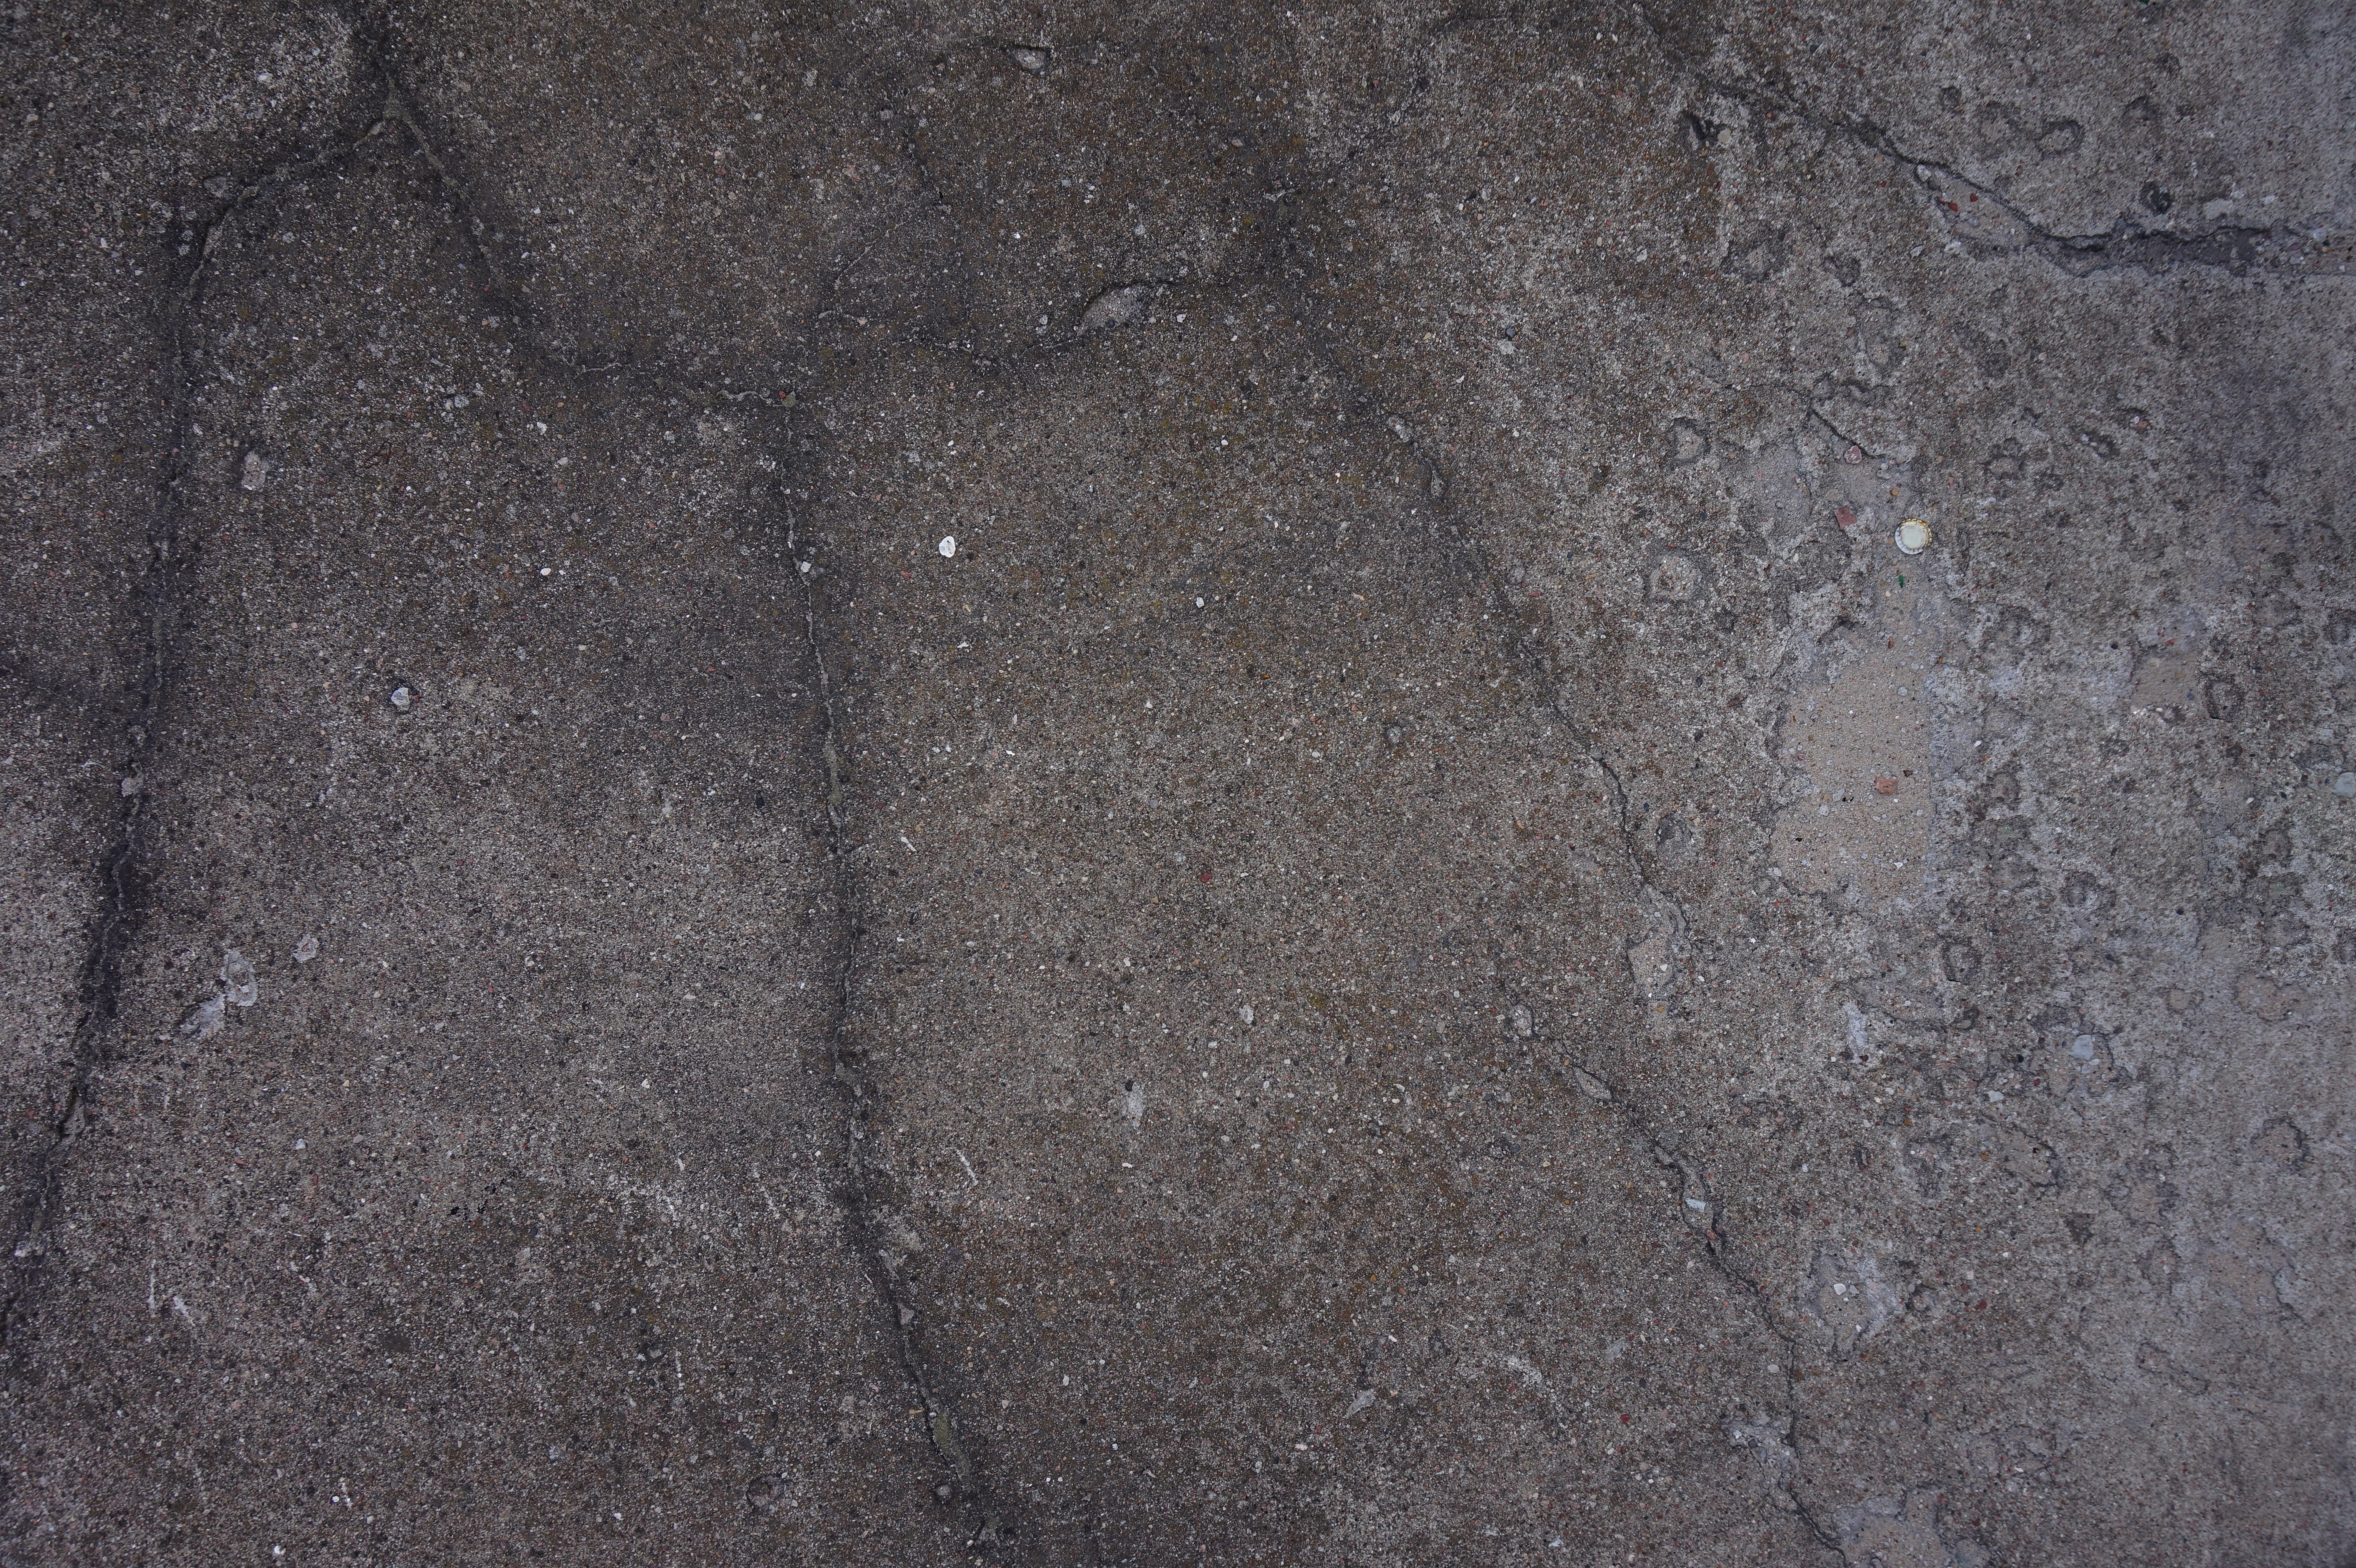 Old dirty cracked concrete wall - Concrete - Texturify - Free textures